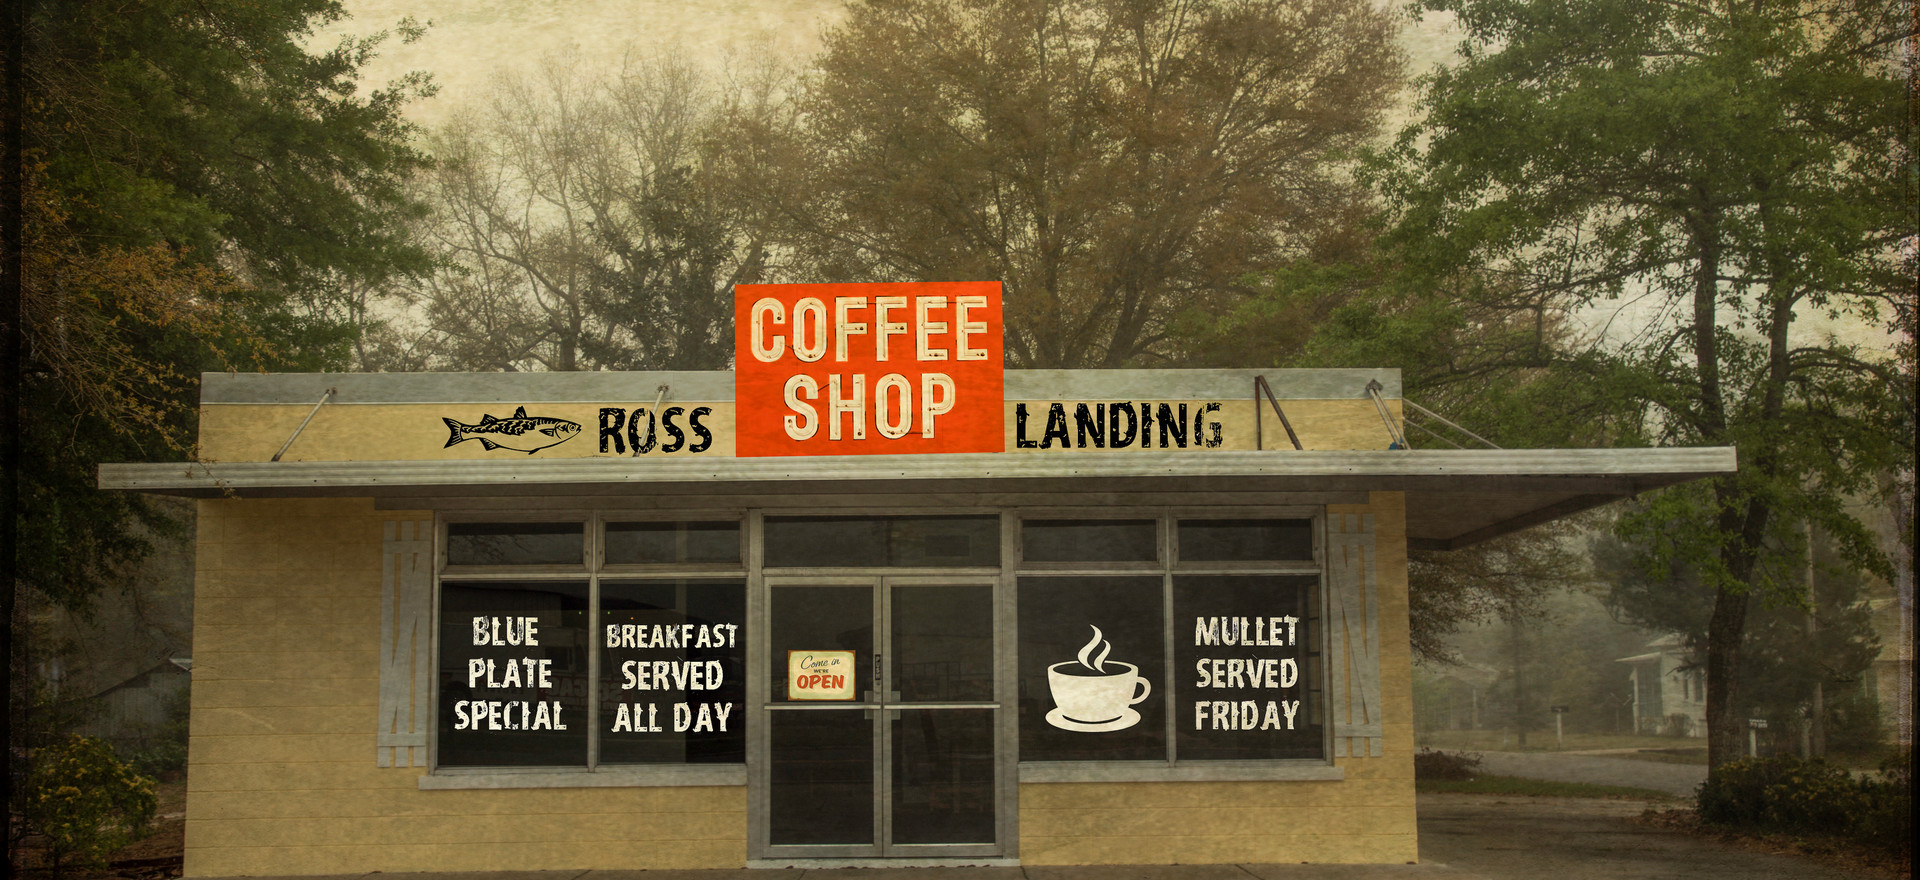 Ross Landing Coffee Shop